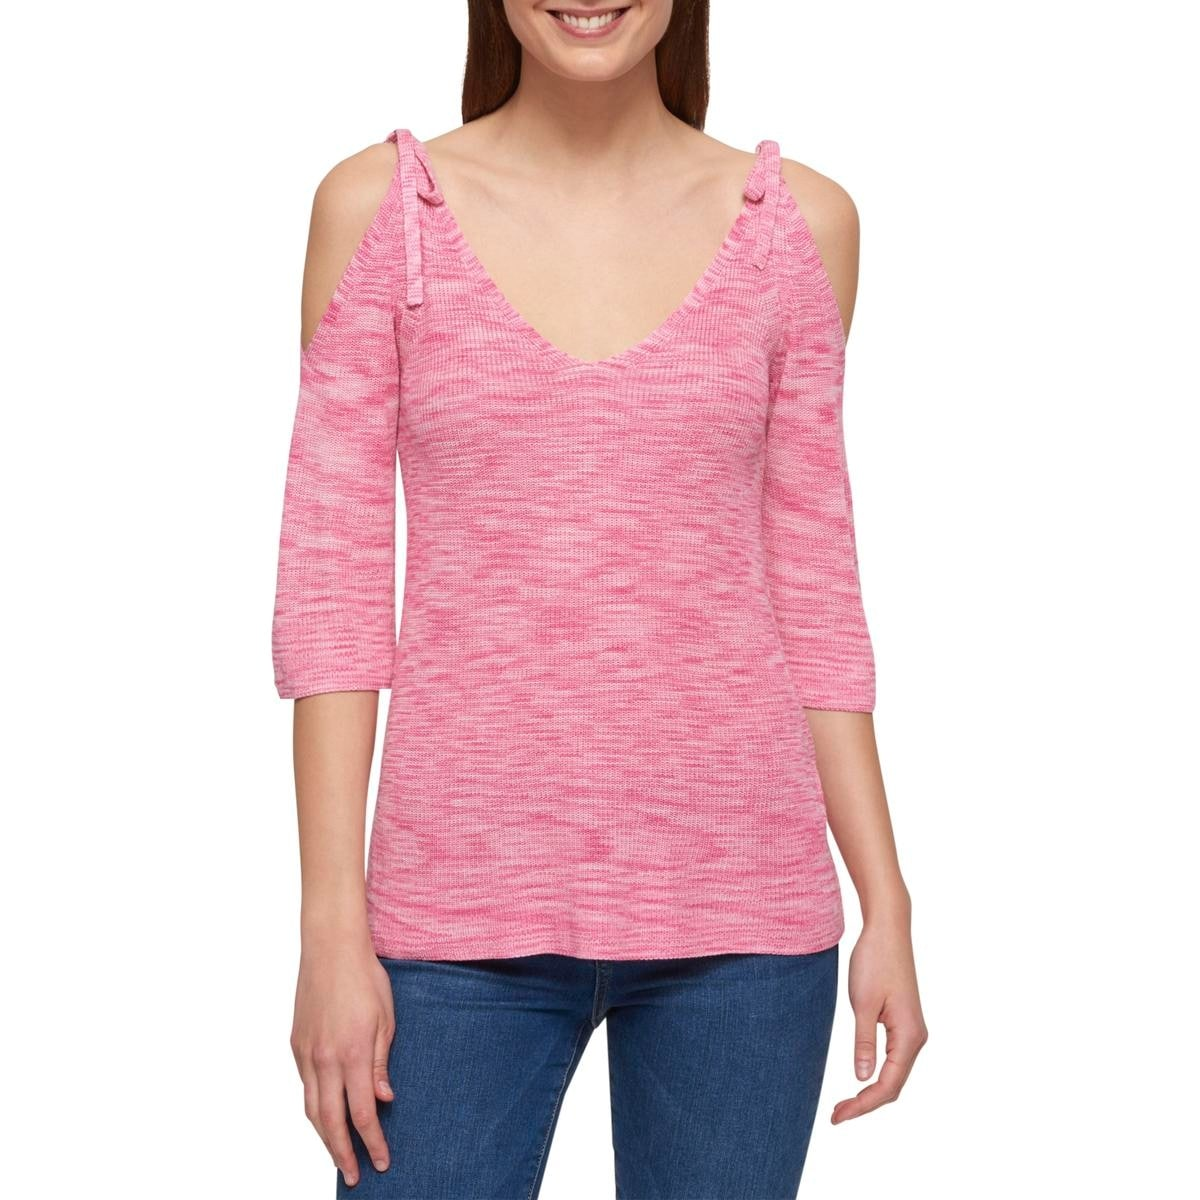 ae1536e6 Shop Tommy Hilfiger Womens Pullover Sweater 3/4 Sleeve Cold Shoulder - Free  Shipping On Orders Over $45 - Overstock.com - 21027132